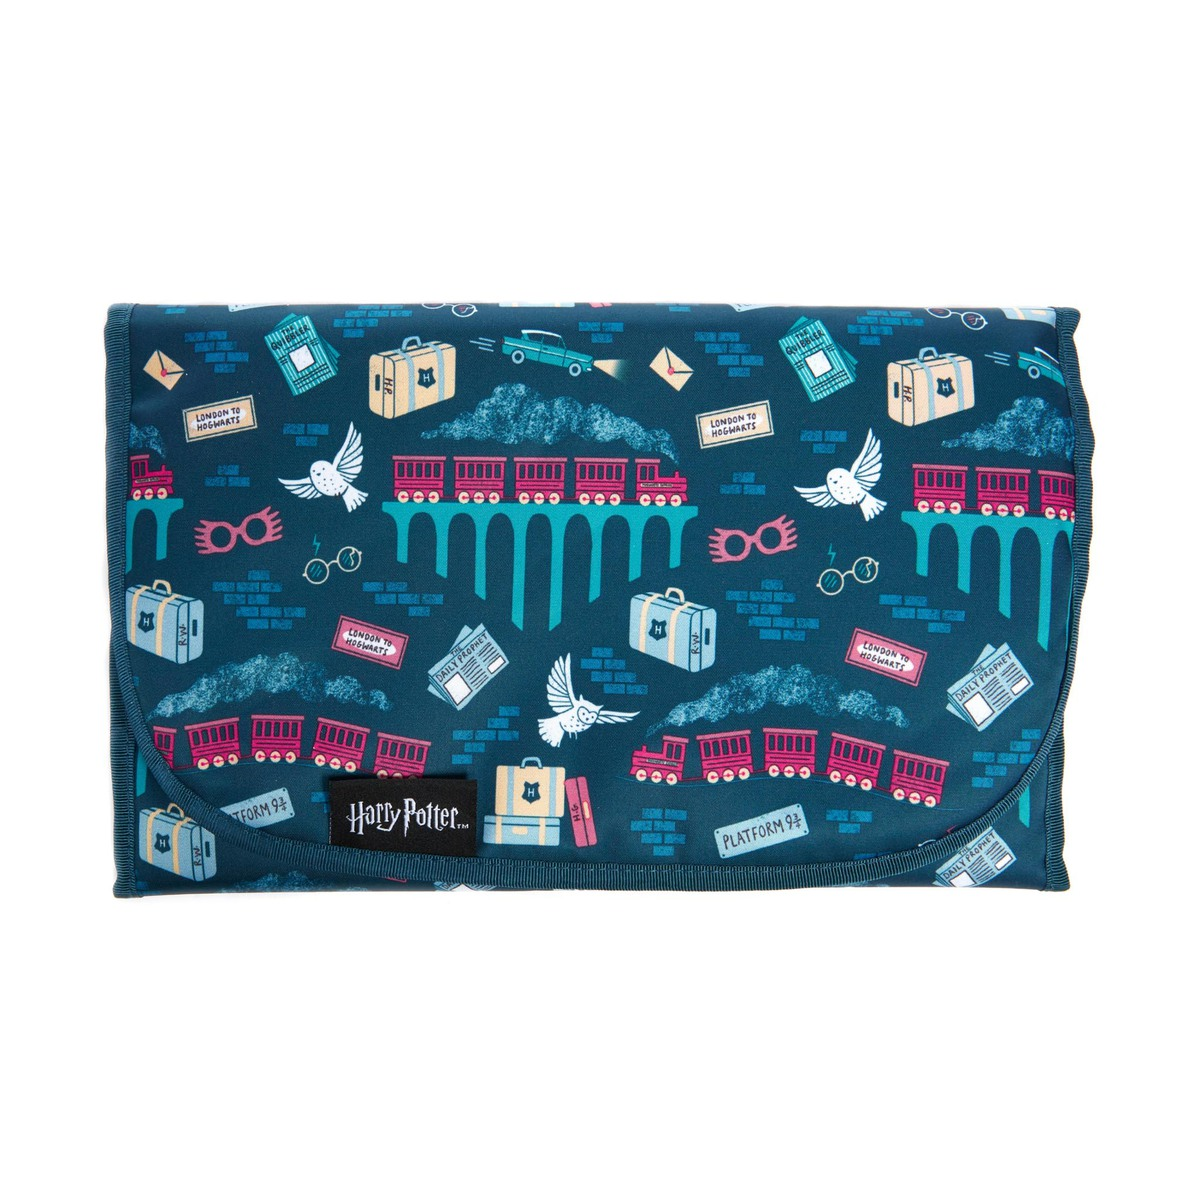 The Platform 9 3/4 pattern features trains, trunks, and snowy owls.